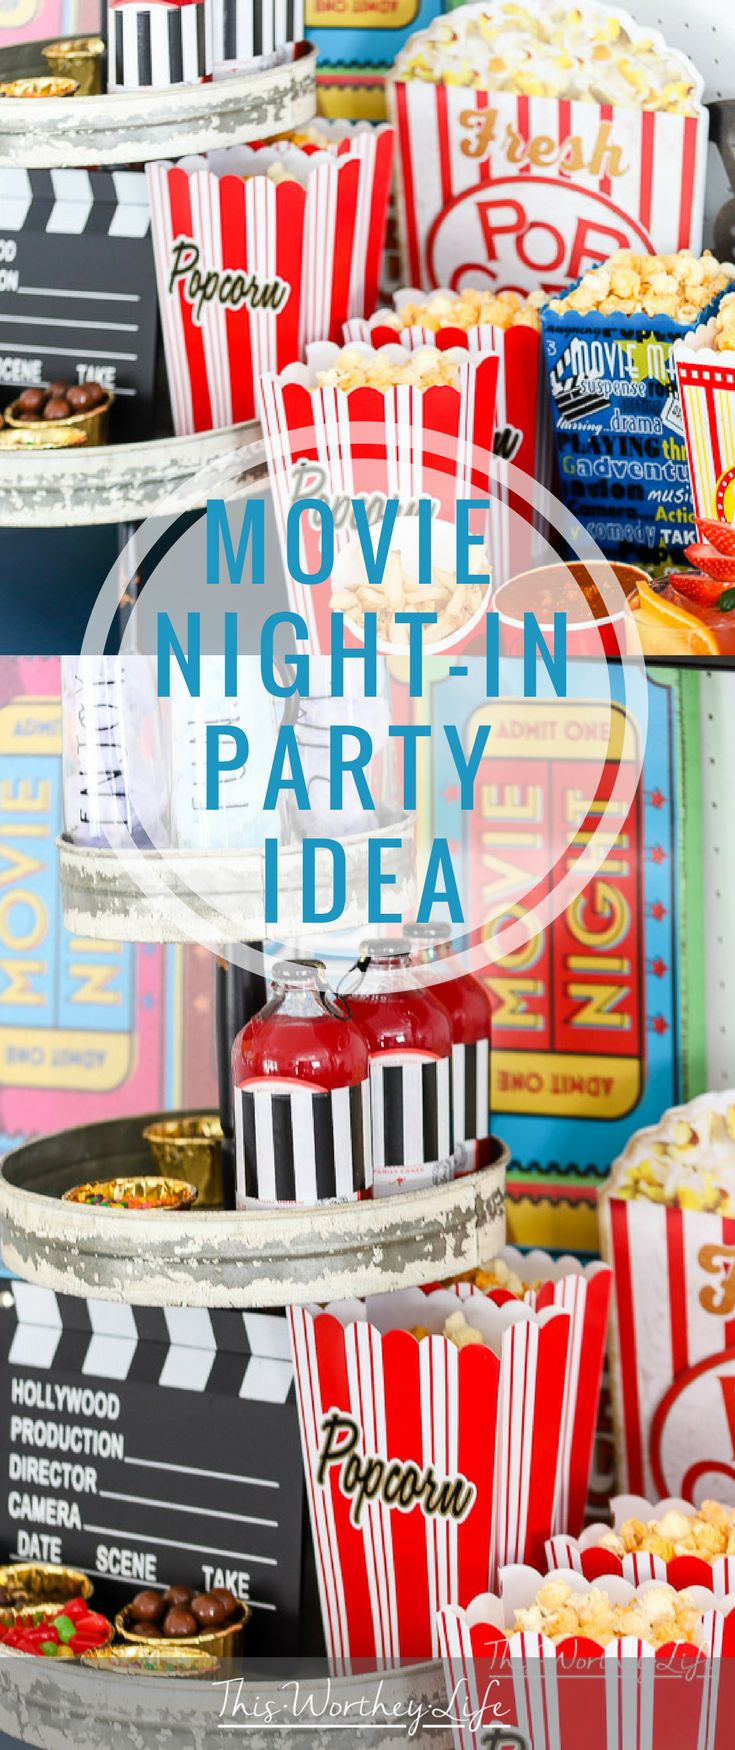 Msg 4 21+ Movie Night Party Ideas for Couples-Create your own movie night-in party with snacks, popcorn, and drinks with our party ideas listed below. We're reminiscing about the drive-in movie days and created an easy movie night party idea for our friends and family! #SignatureSips [AD]